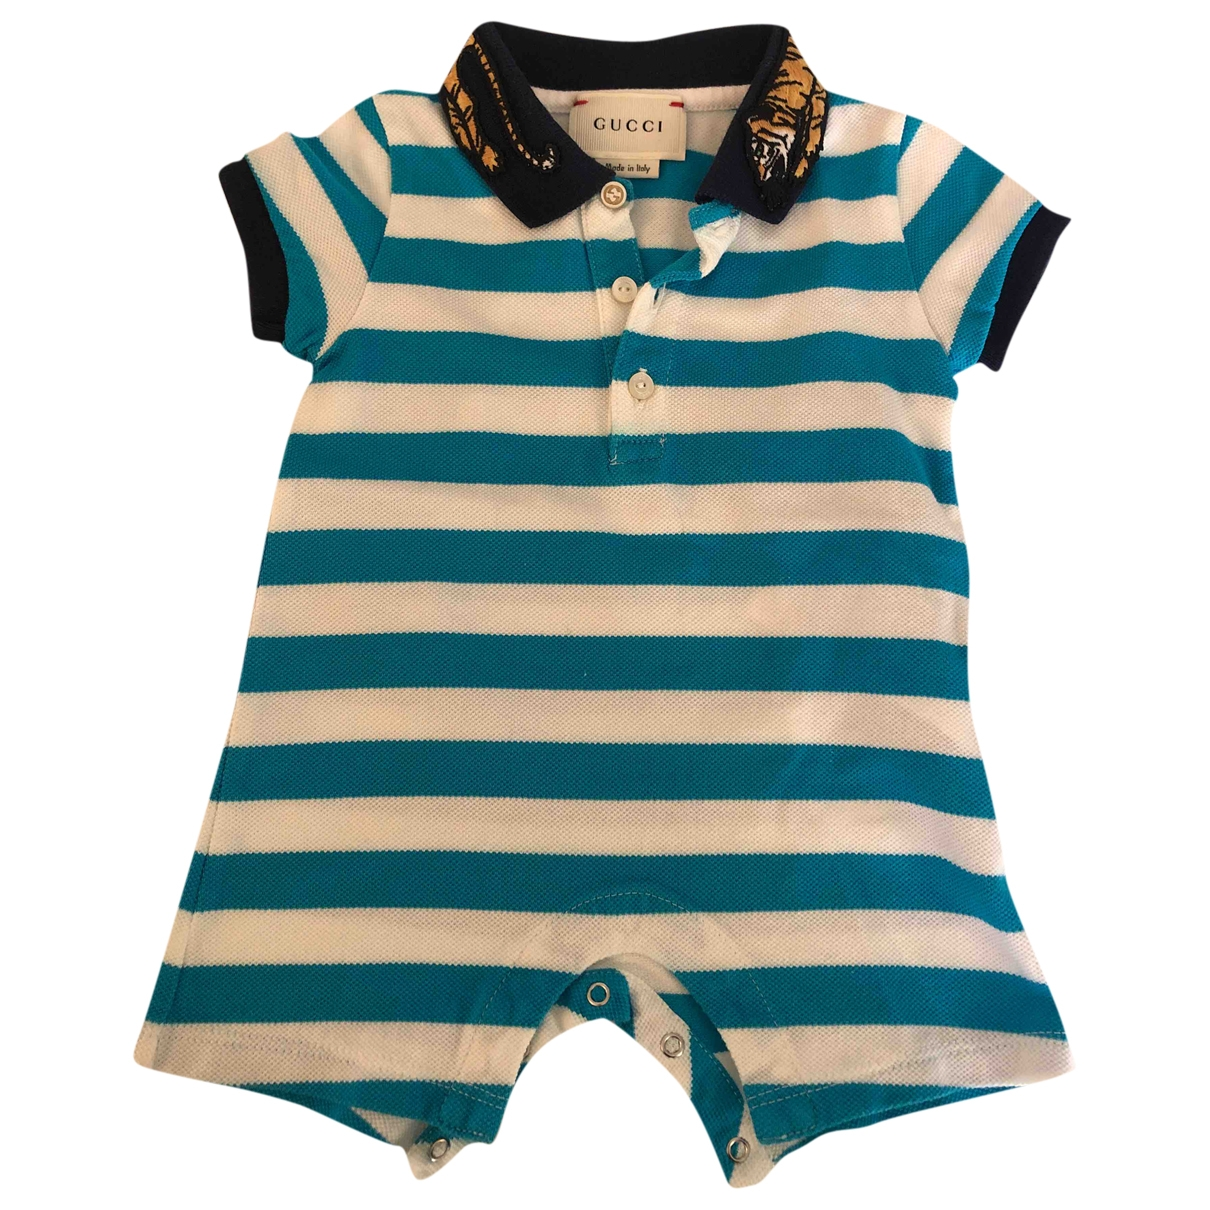 Gucci \N White Cotton Outfits for Kids 3 months - up to 60cm FR